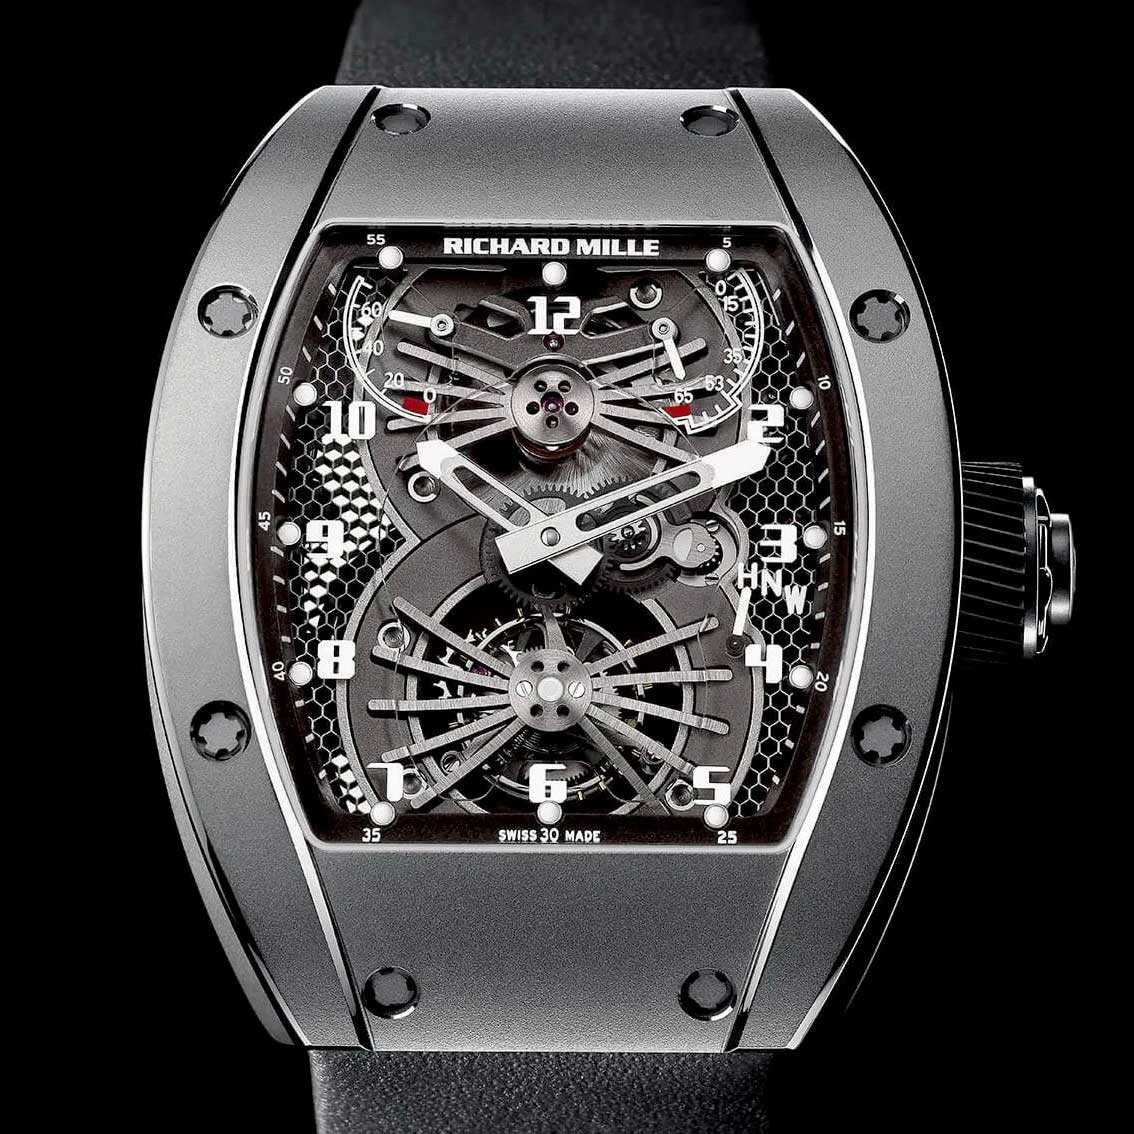 The Richard Mille RM021 Tourbillon Aerodyne is the first watch to be created with a baseplate of titanium and honeycombed orthorhombic titanium aluminide with a carbon nanofiber core